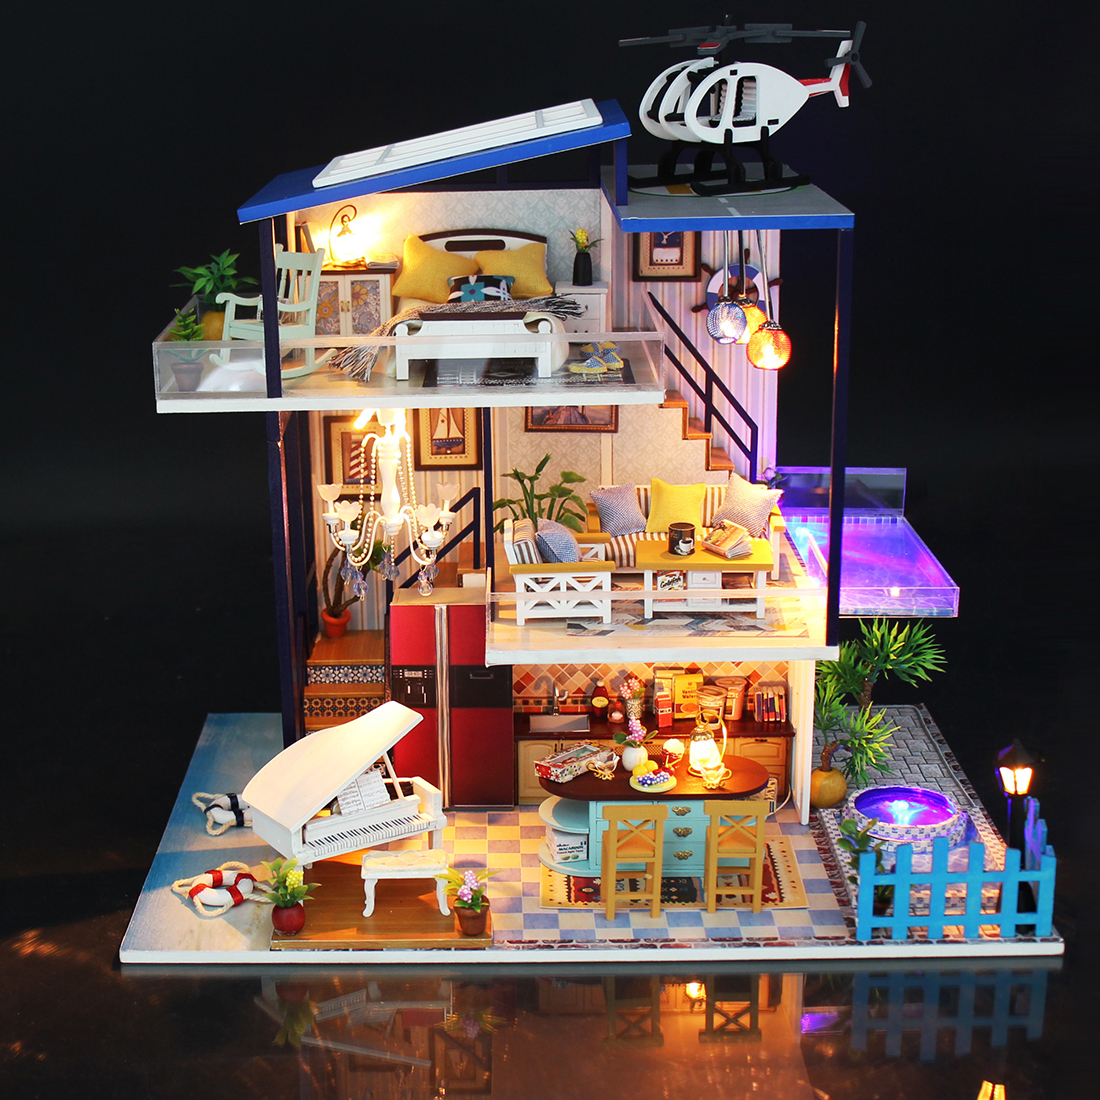 DIY Doll Houses Handmade Theme Wooden Cabin Assembly Building Model Toy Set With Light And Music - Blue Sea Romance